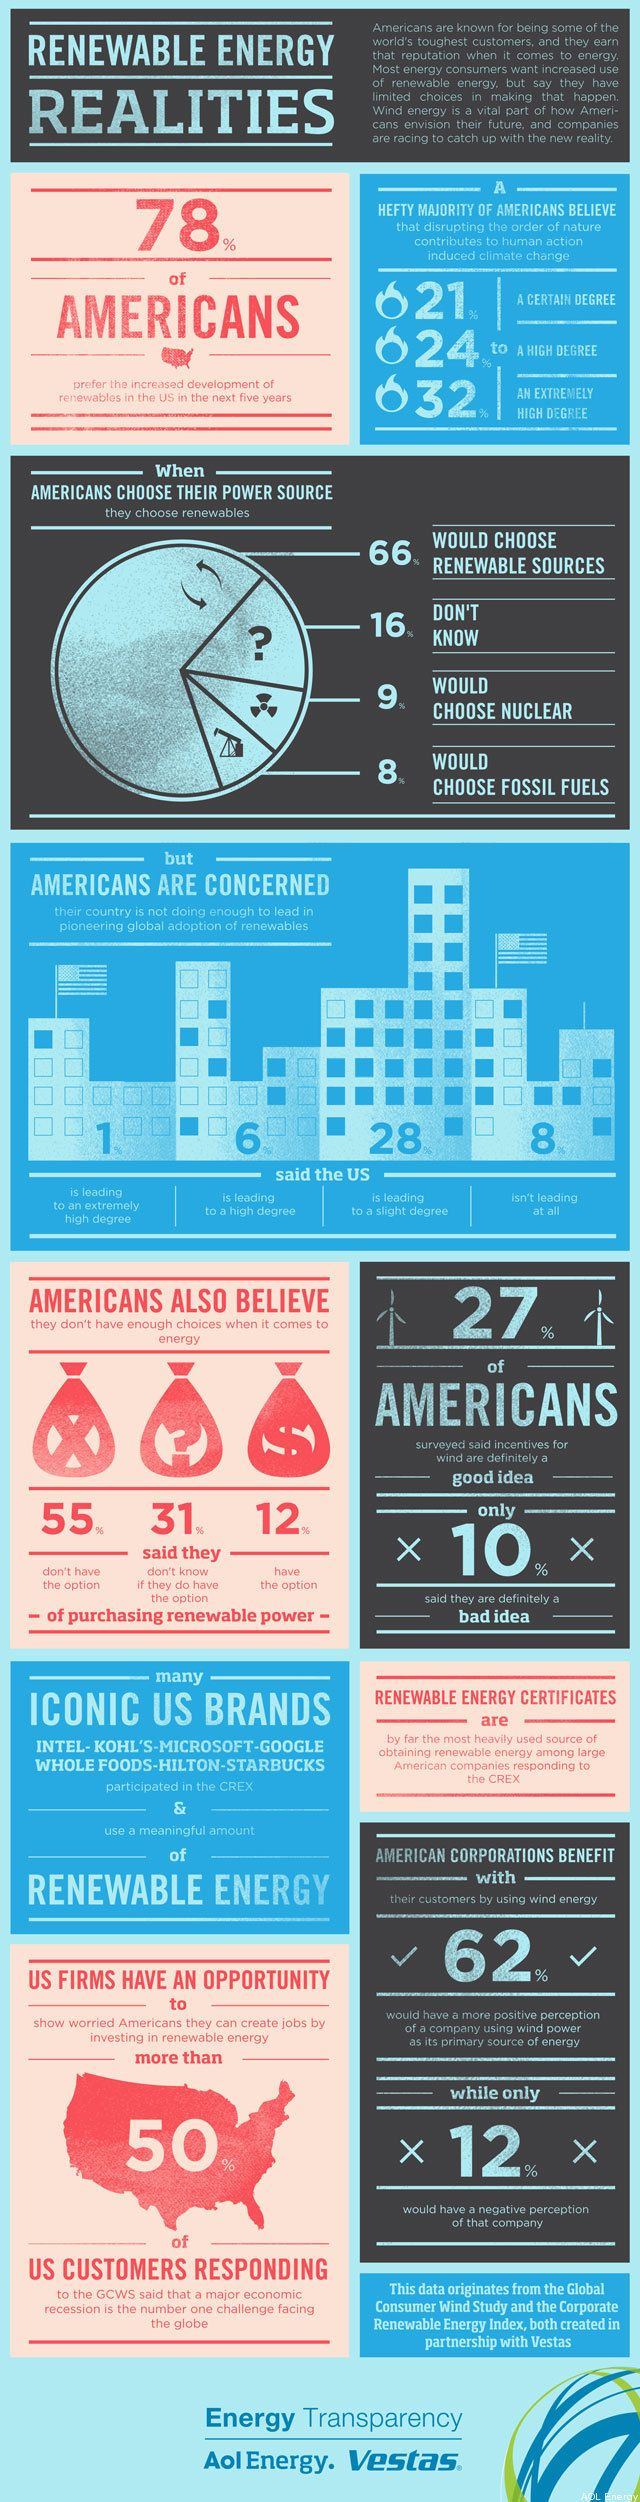 renewable energy realities us energy transparency infographic renewable energy realities us energy transparency infographic